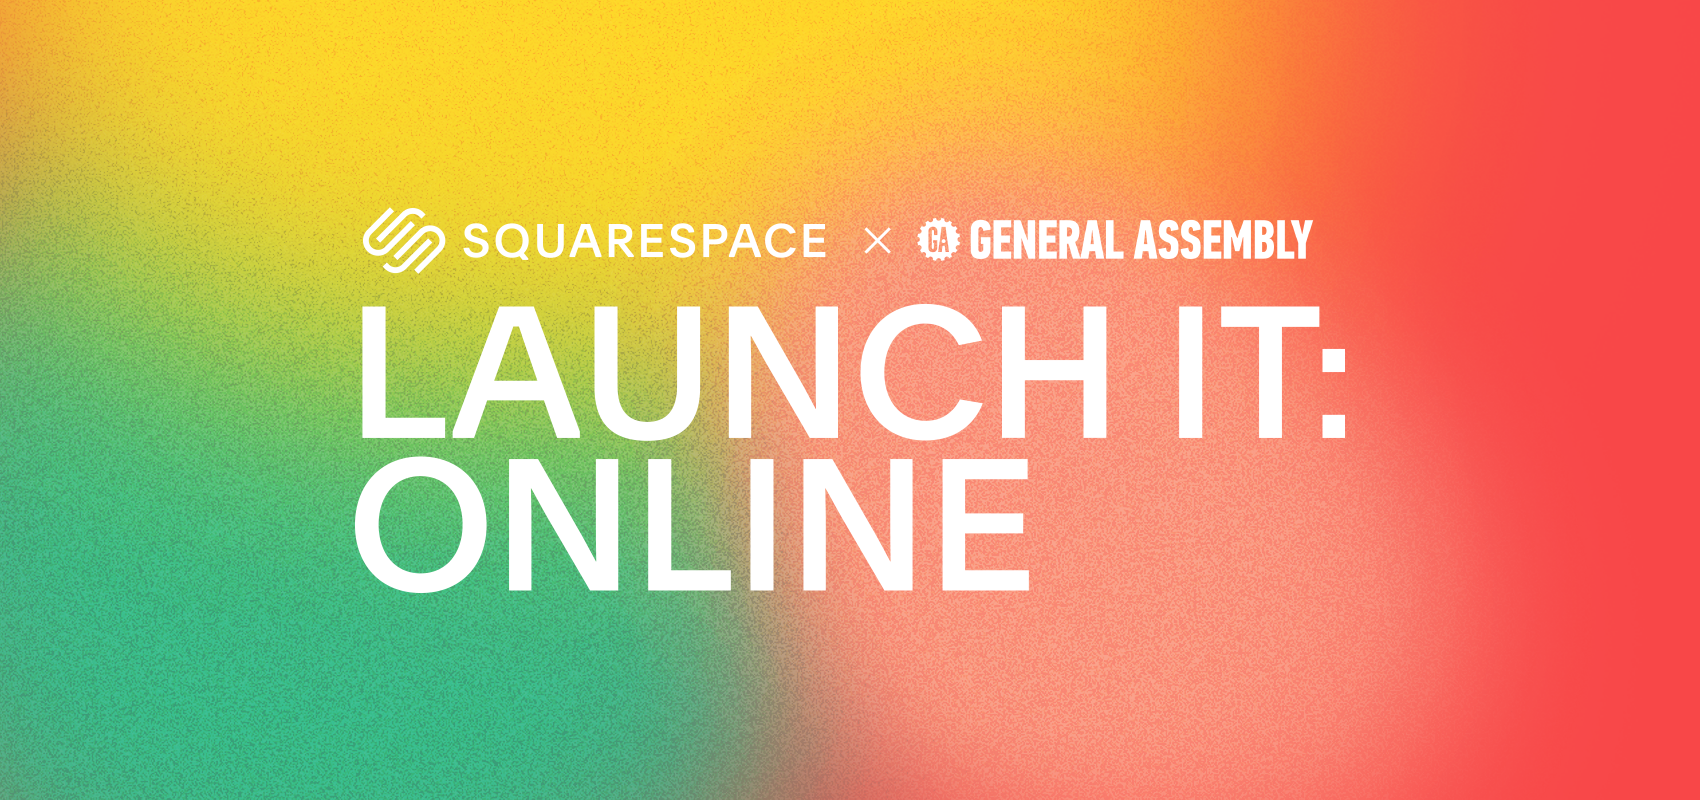 LAUNCH IT: ONLINE - Personal Branding for Entrepreneurs